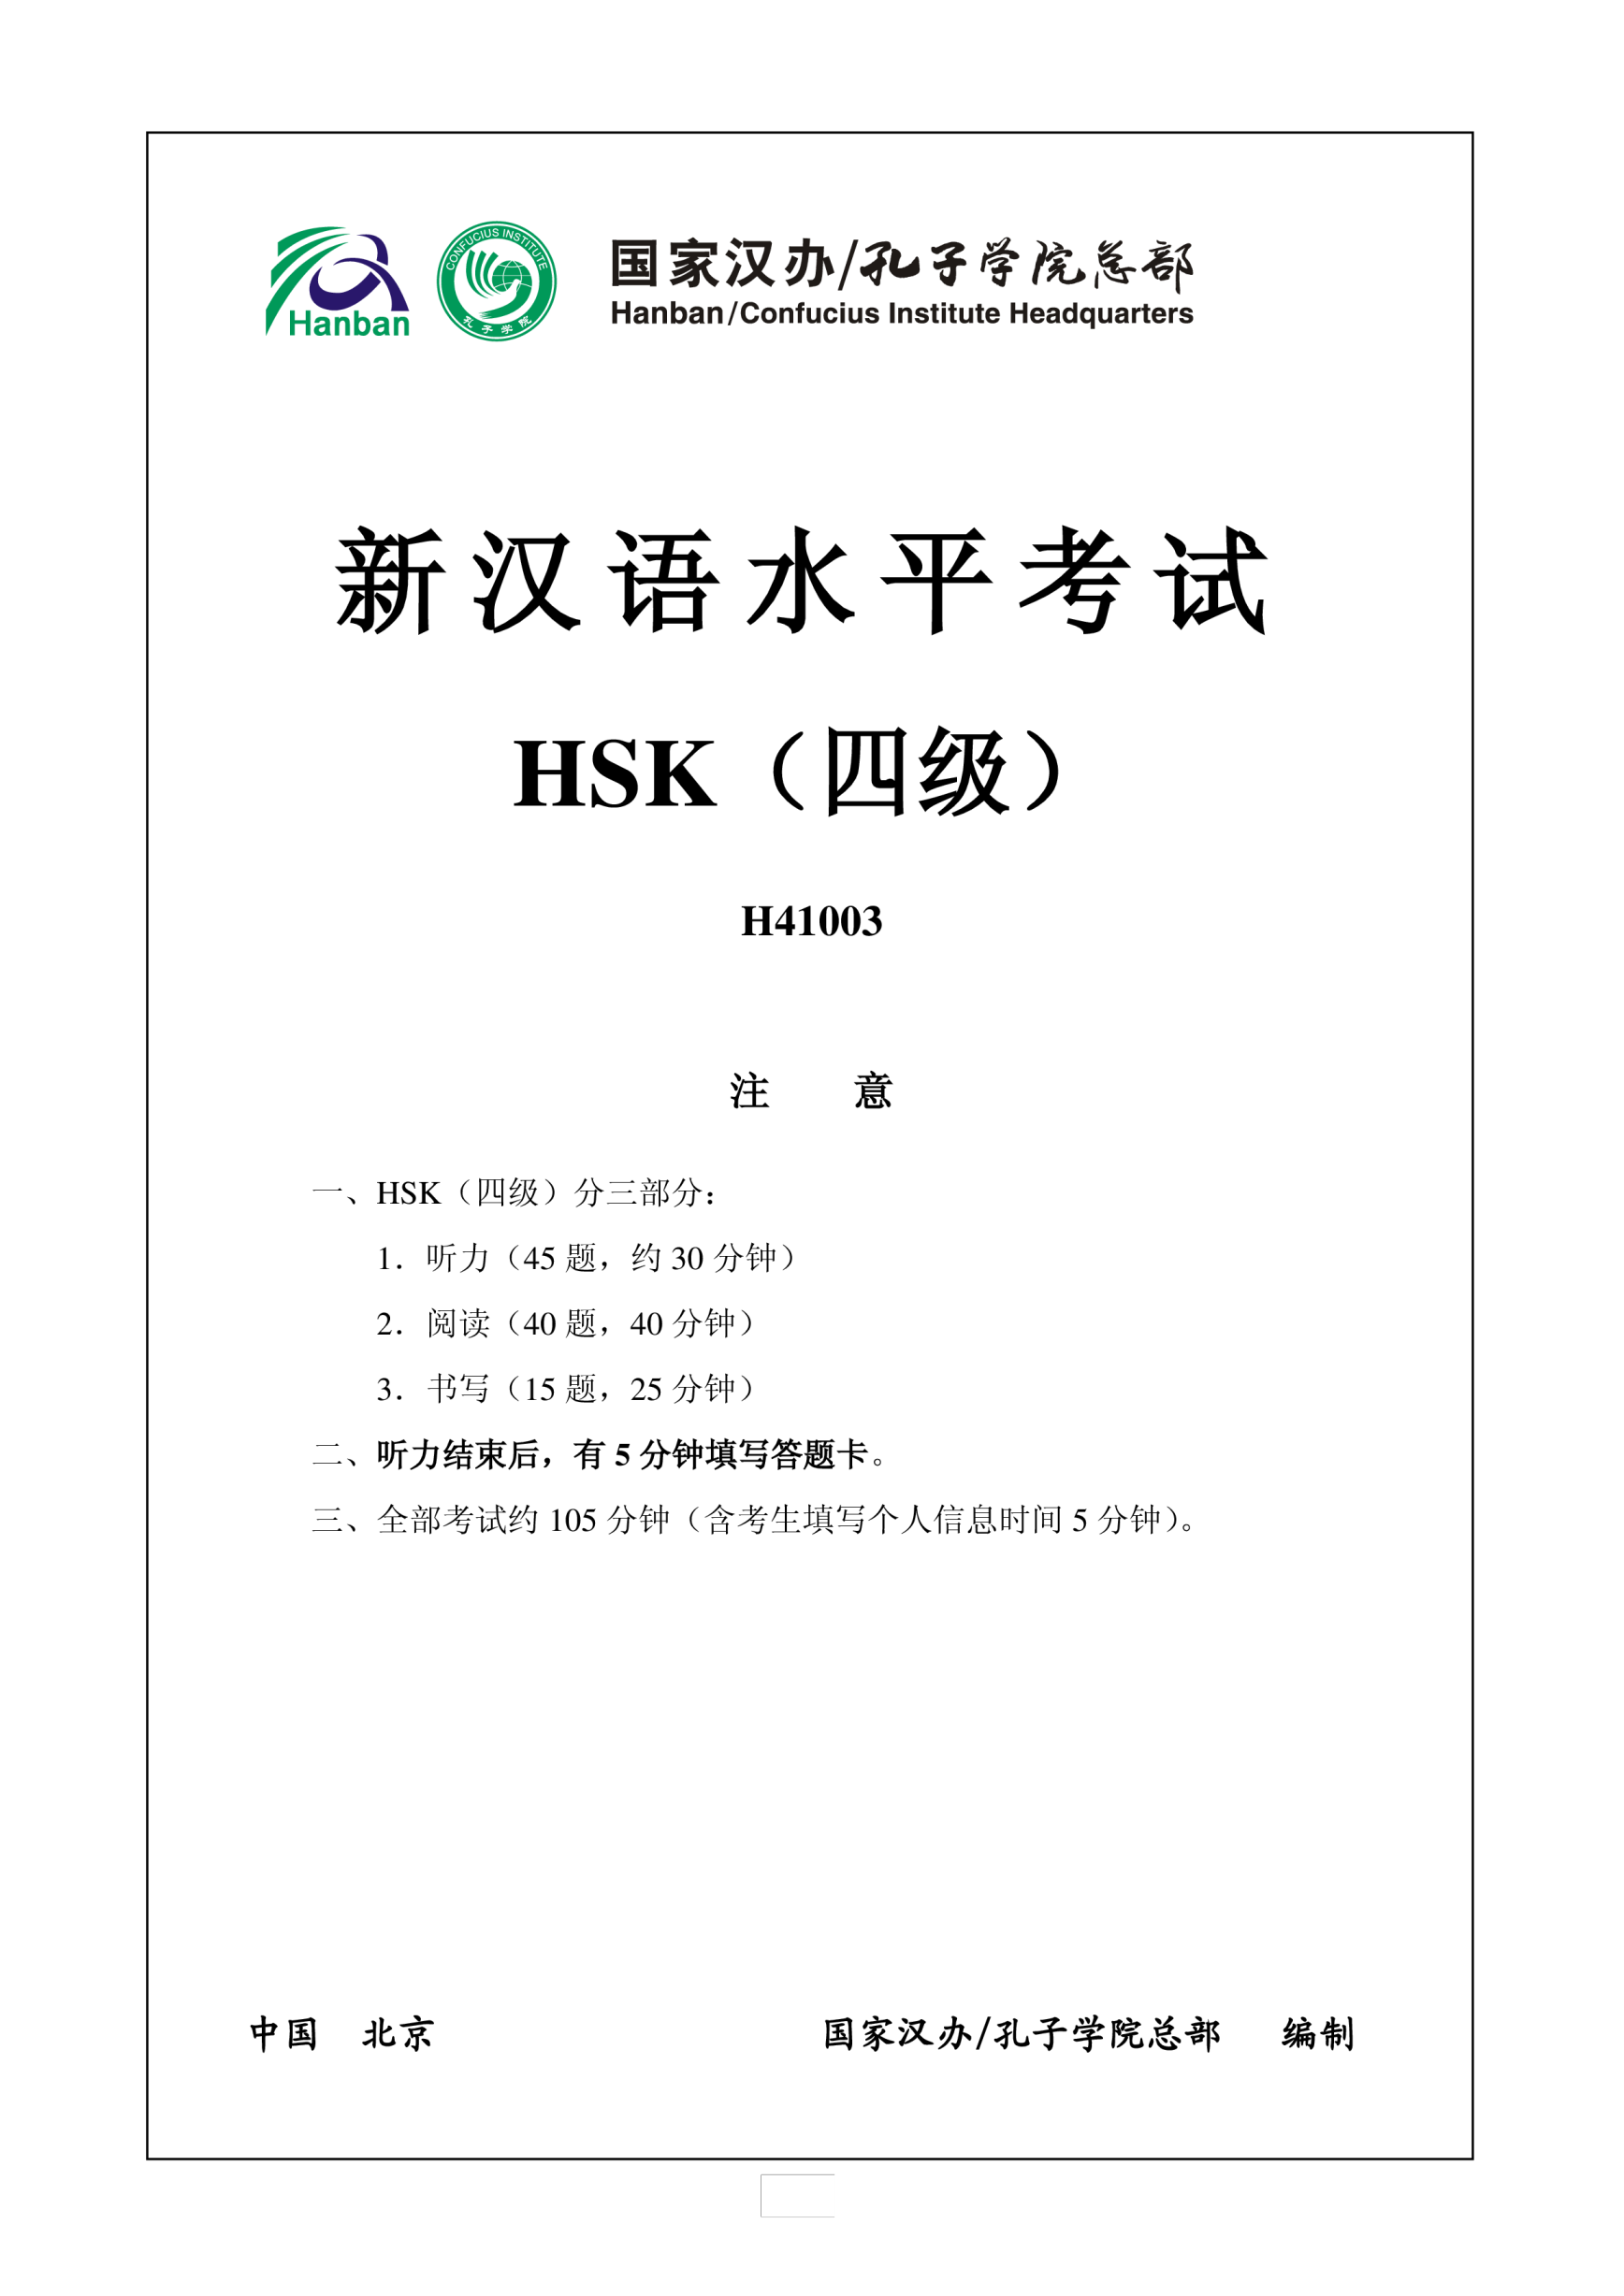 template preview imageHSK4 Chinese Exam including Answers # HSK H41003